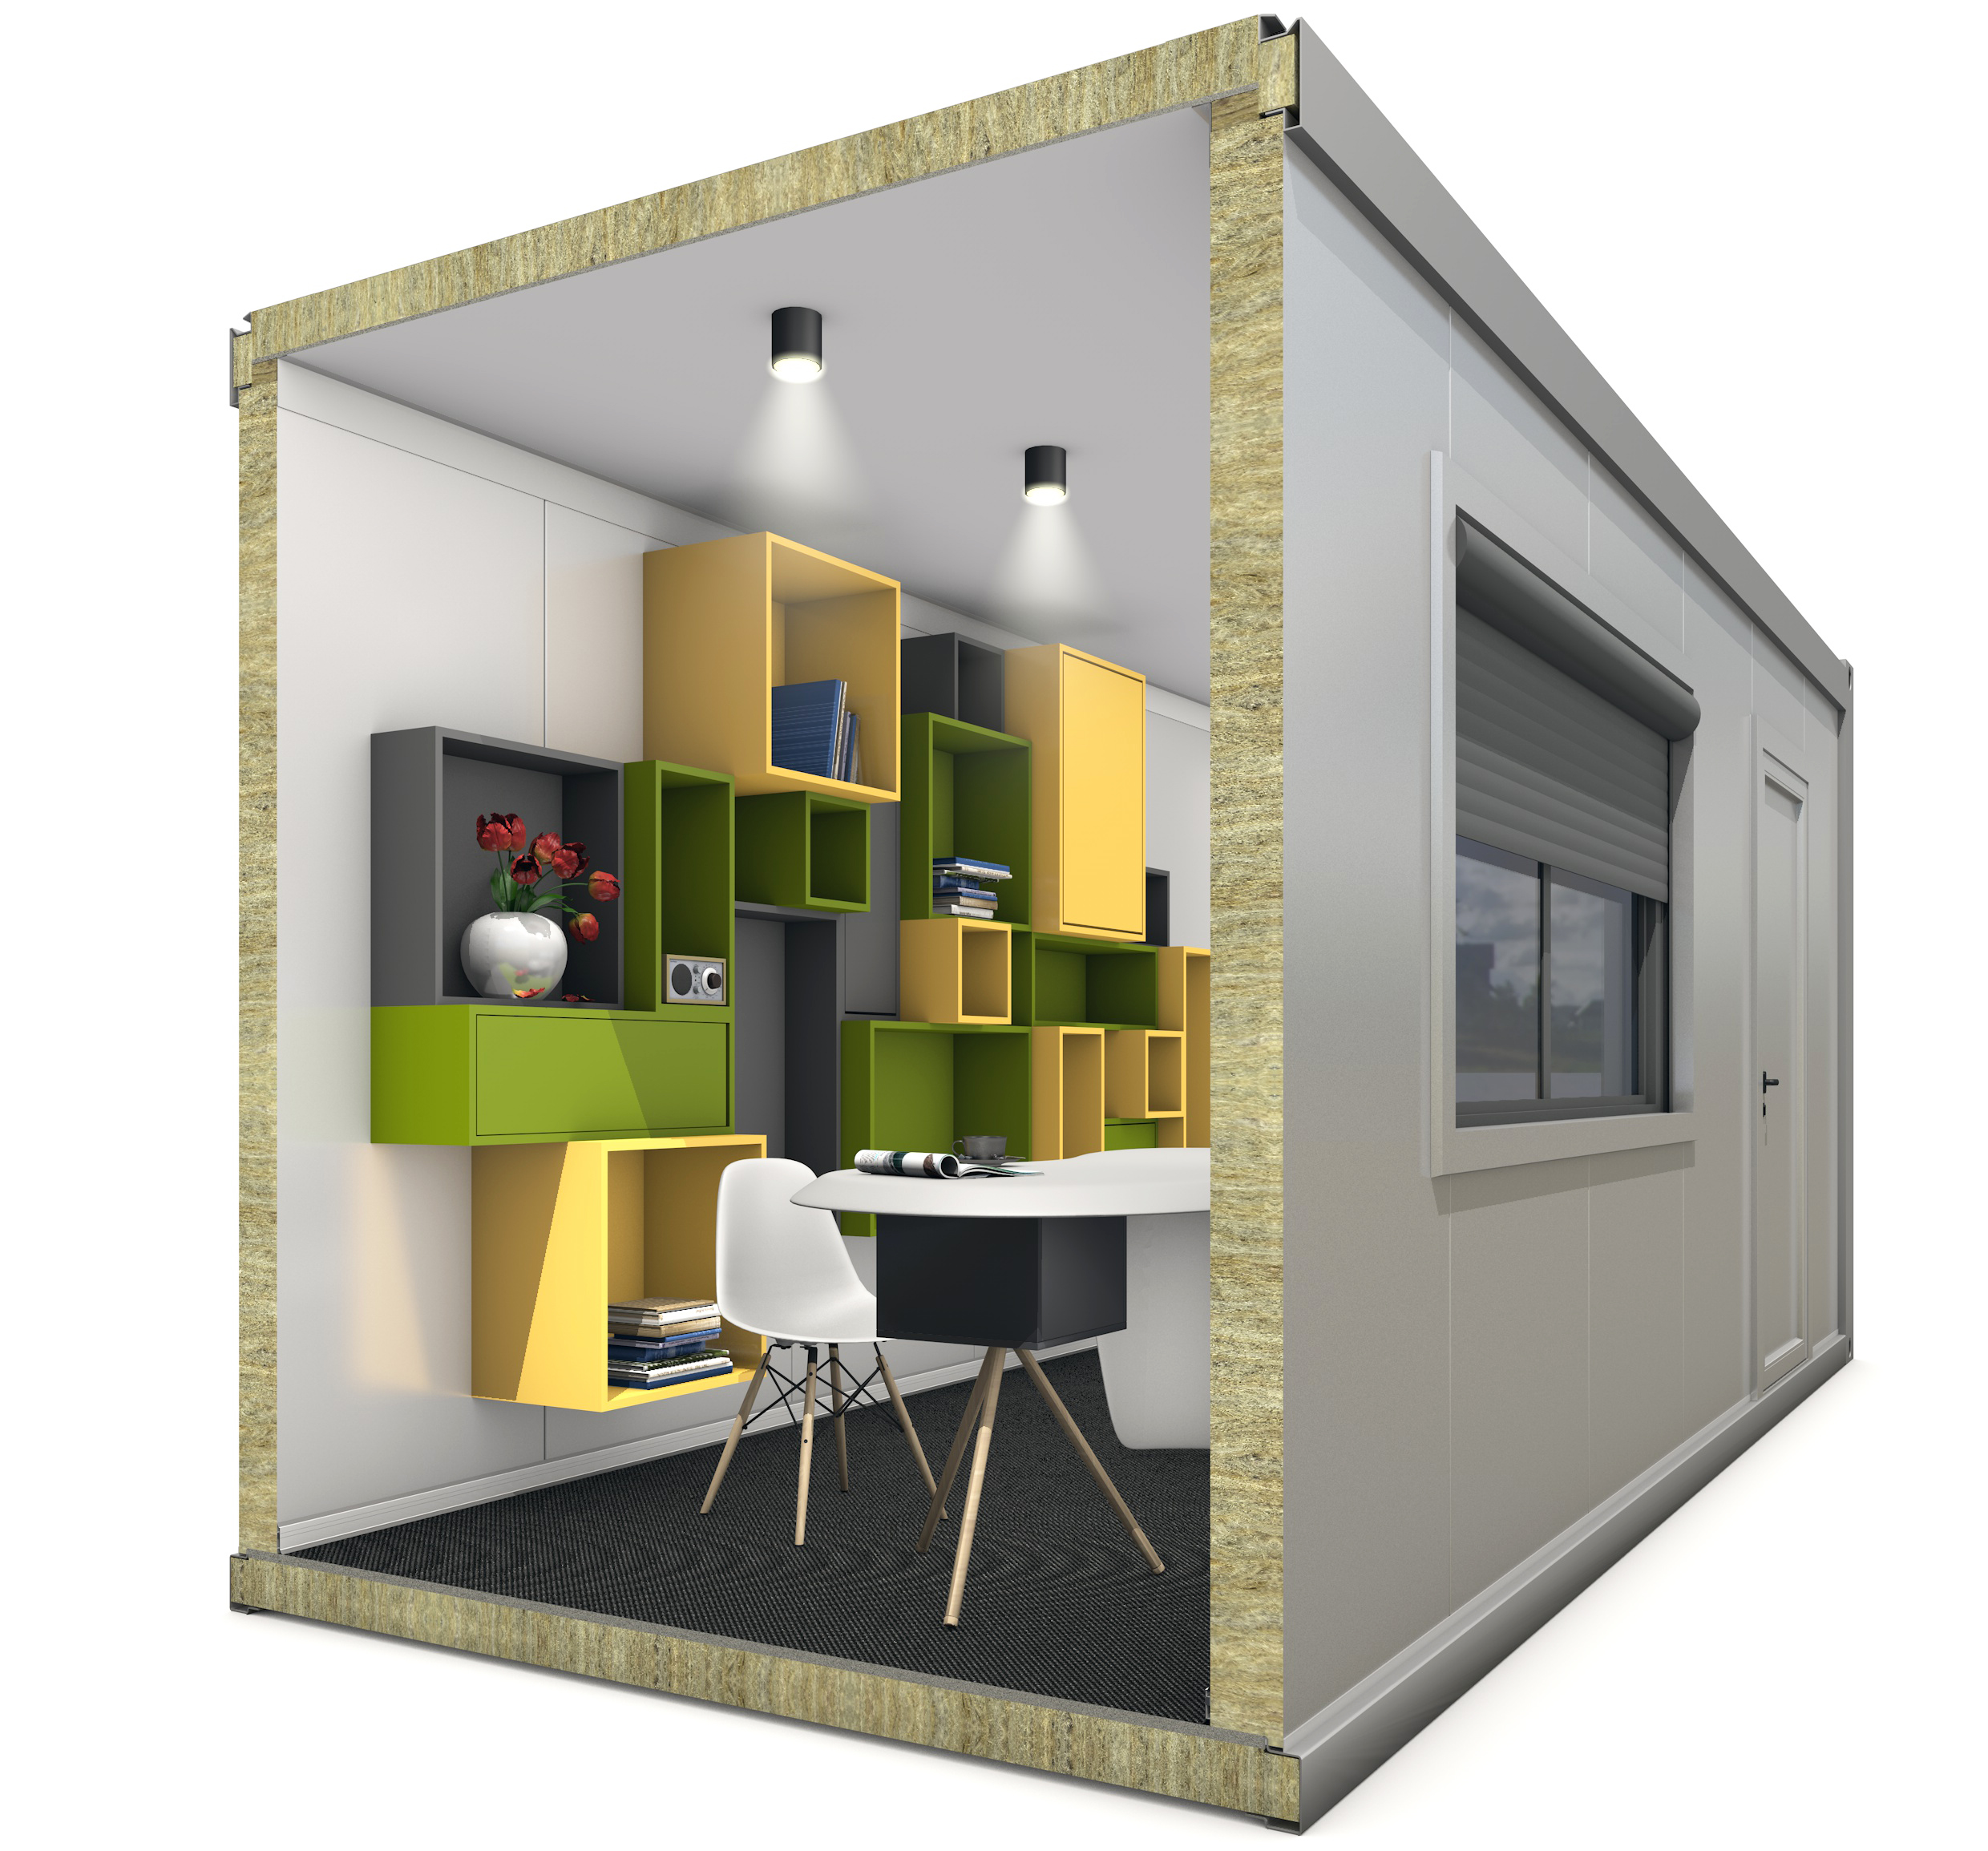 Prefab modular units build from high-quality materials